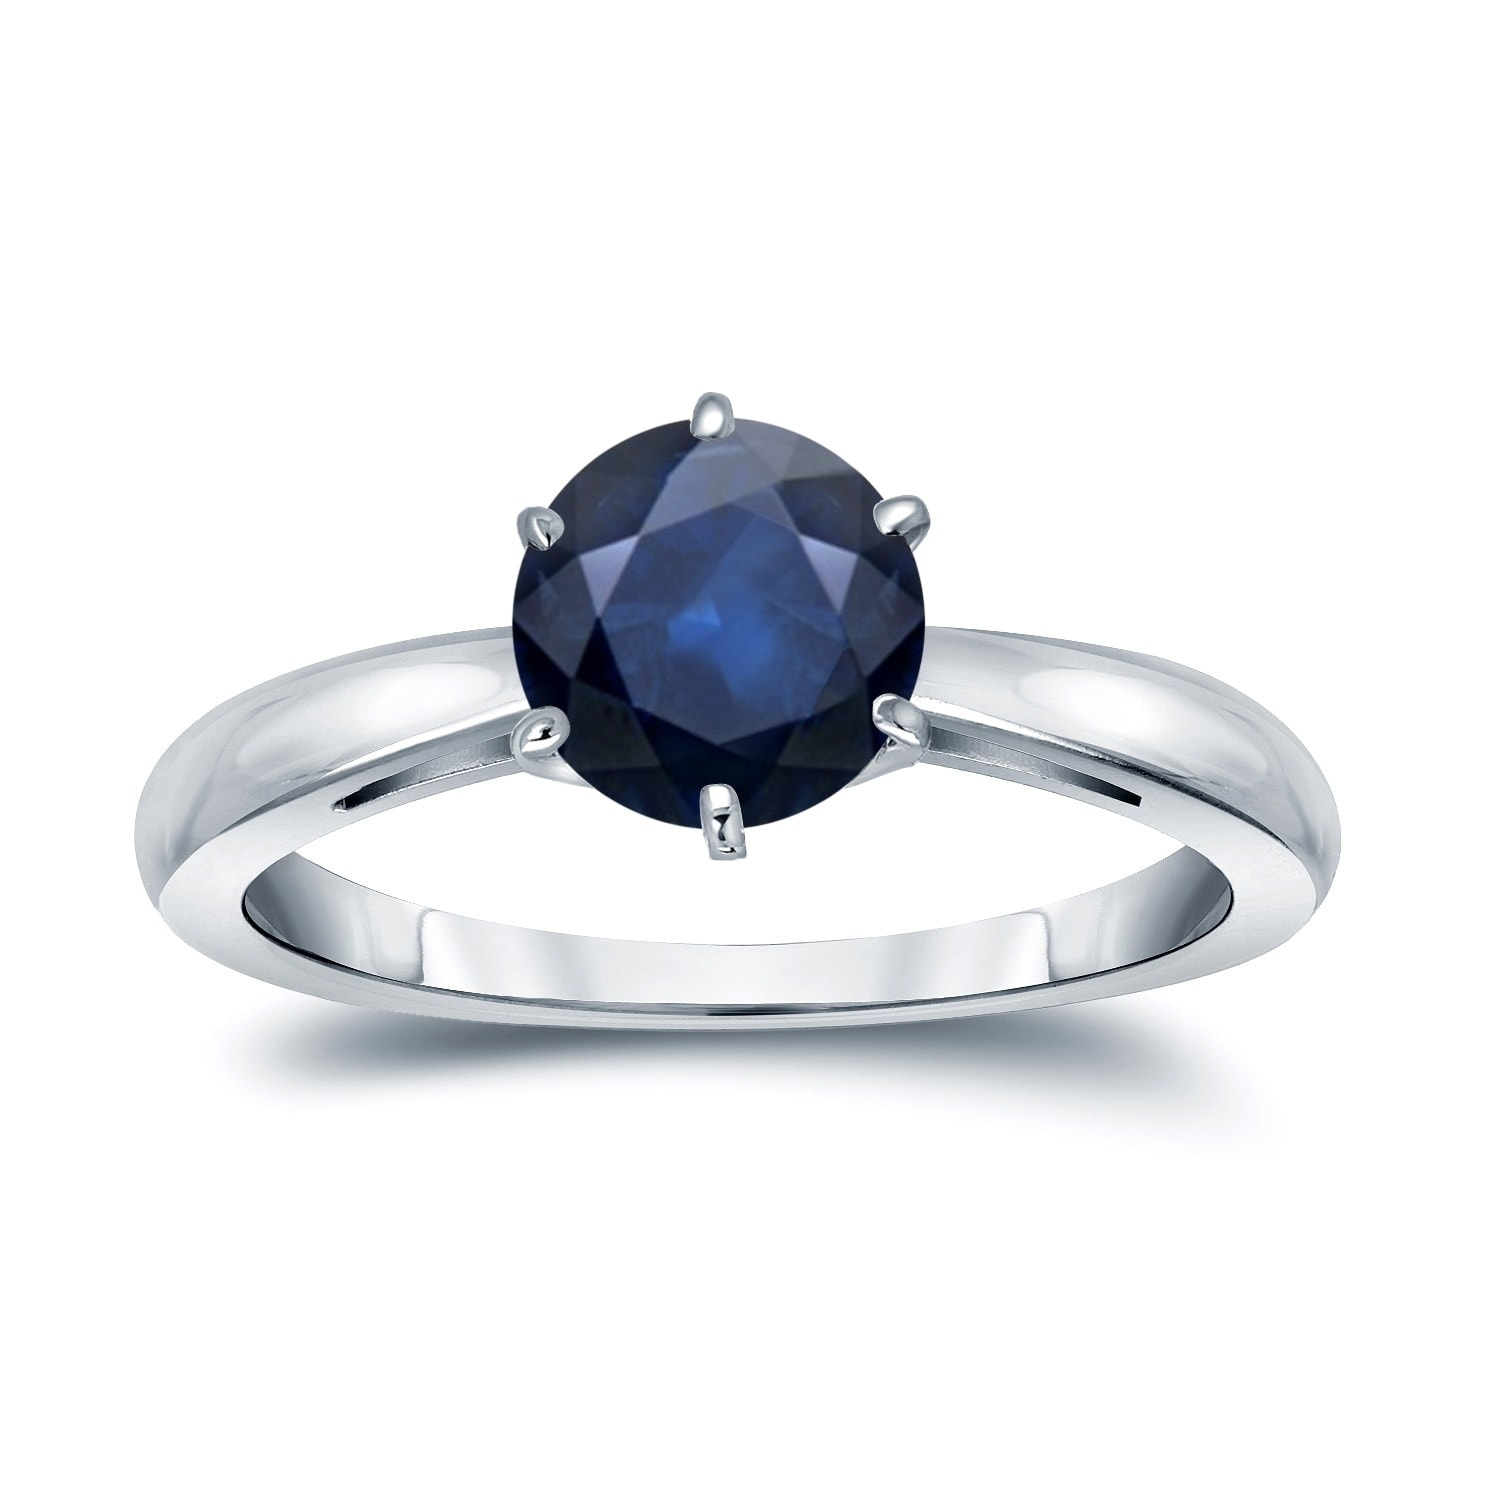 kyklos jewelry rings en ring solitaire untitled shop sapphire